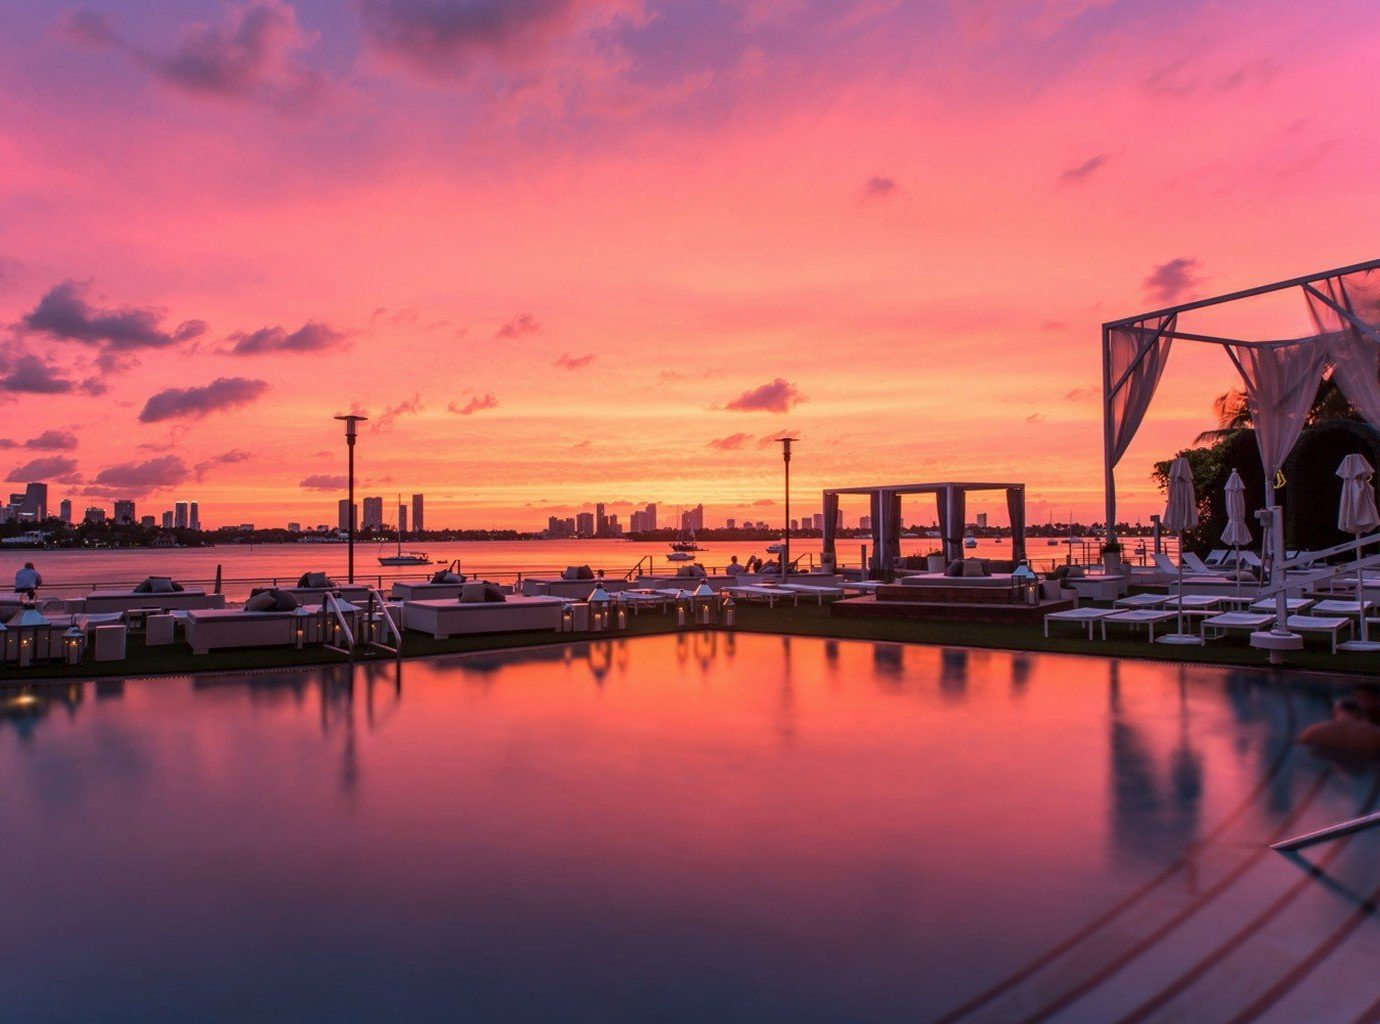 Jetsetter Guides sky water outdoor Boat scene reflection Sunset sunrise dawn afterglow dusk evening horizon morning River cityscape docked dock Sea skyline bridge waterway Harbor marina pier long clouds several